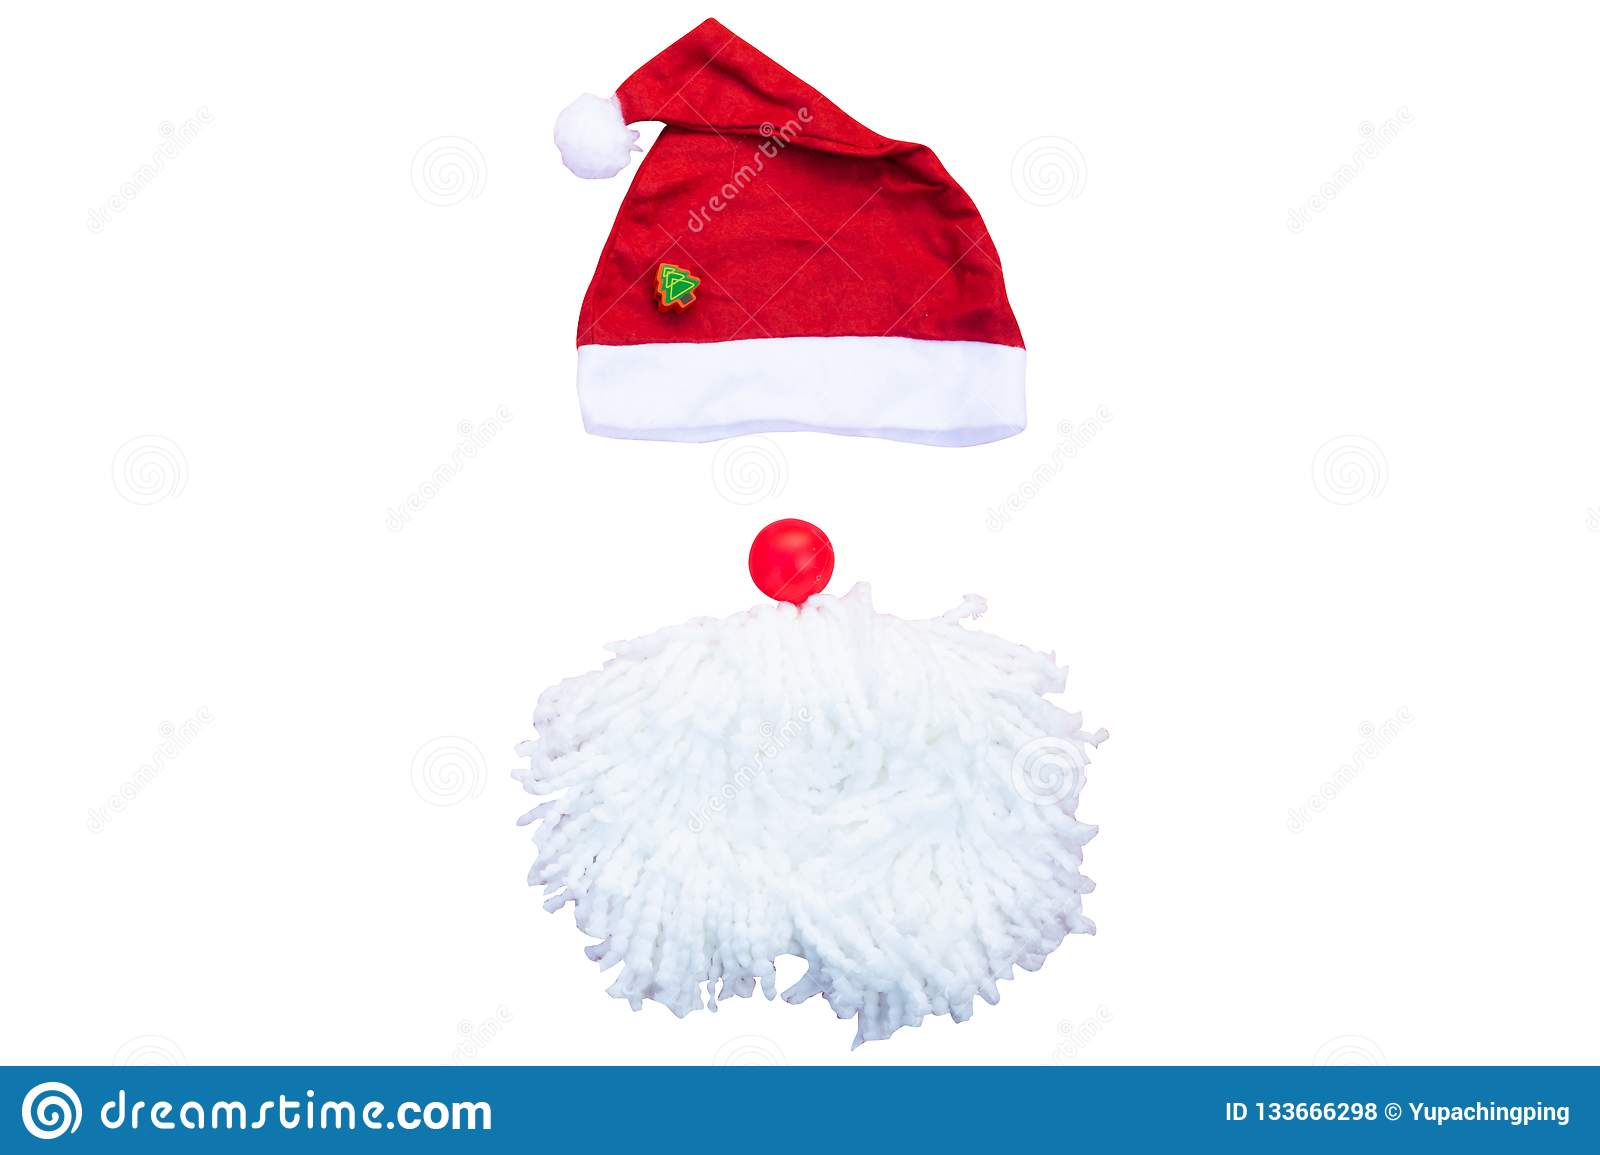 Santa hats with moustache. claus hat red